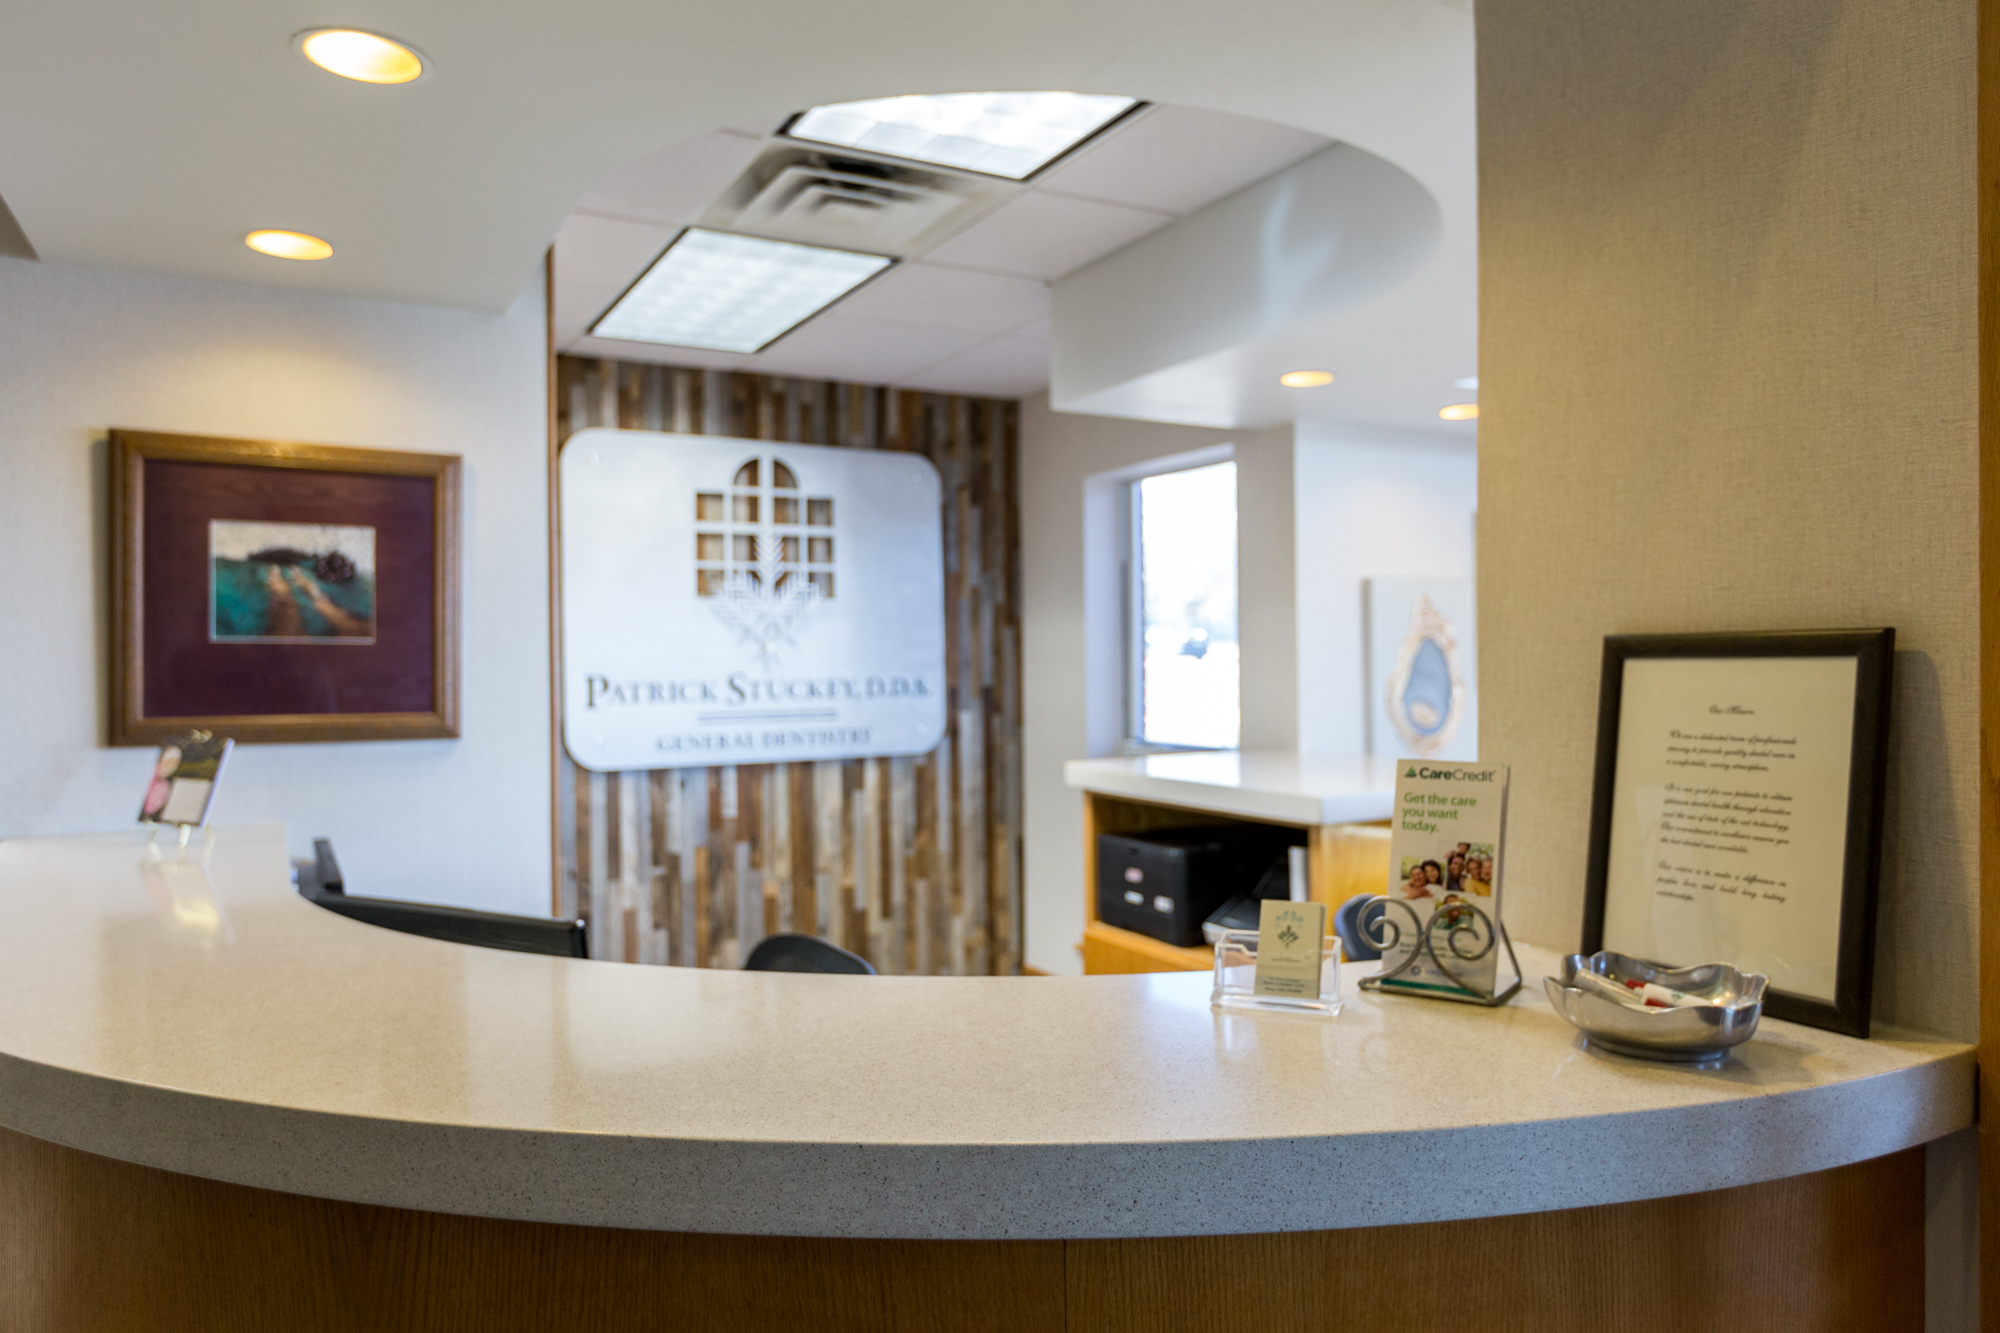 Patrick Stuckey, D.D.S front desk